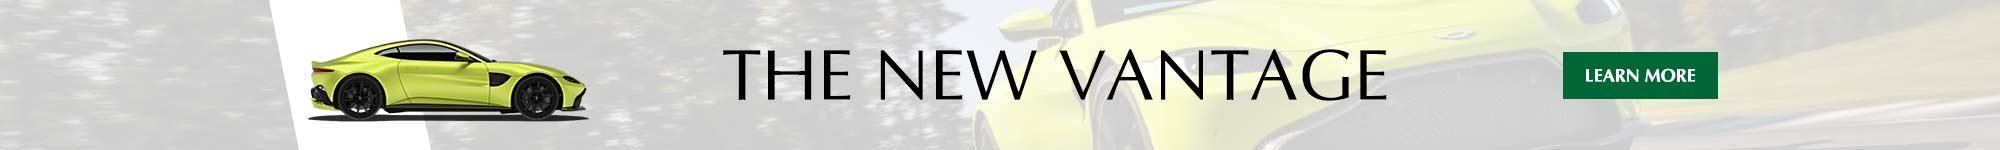 Learn more information about the all new aston martin vantage